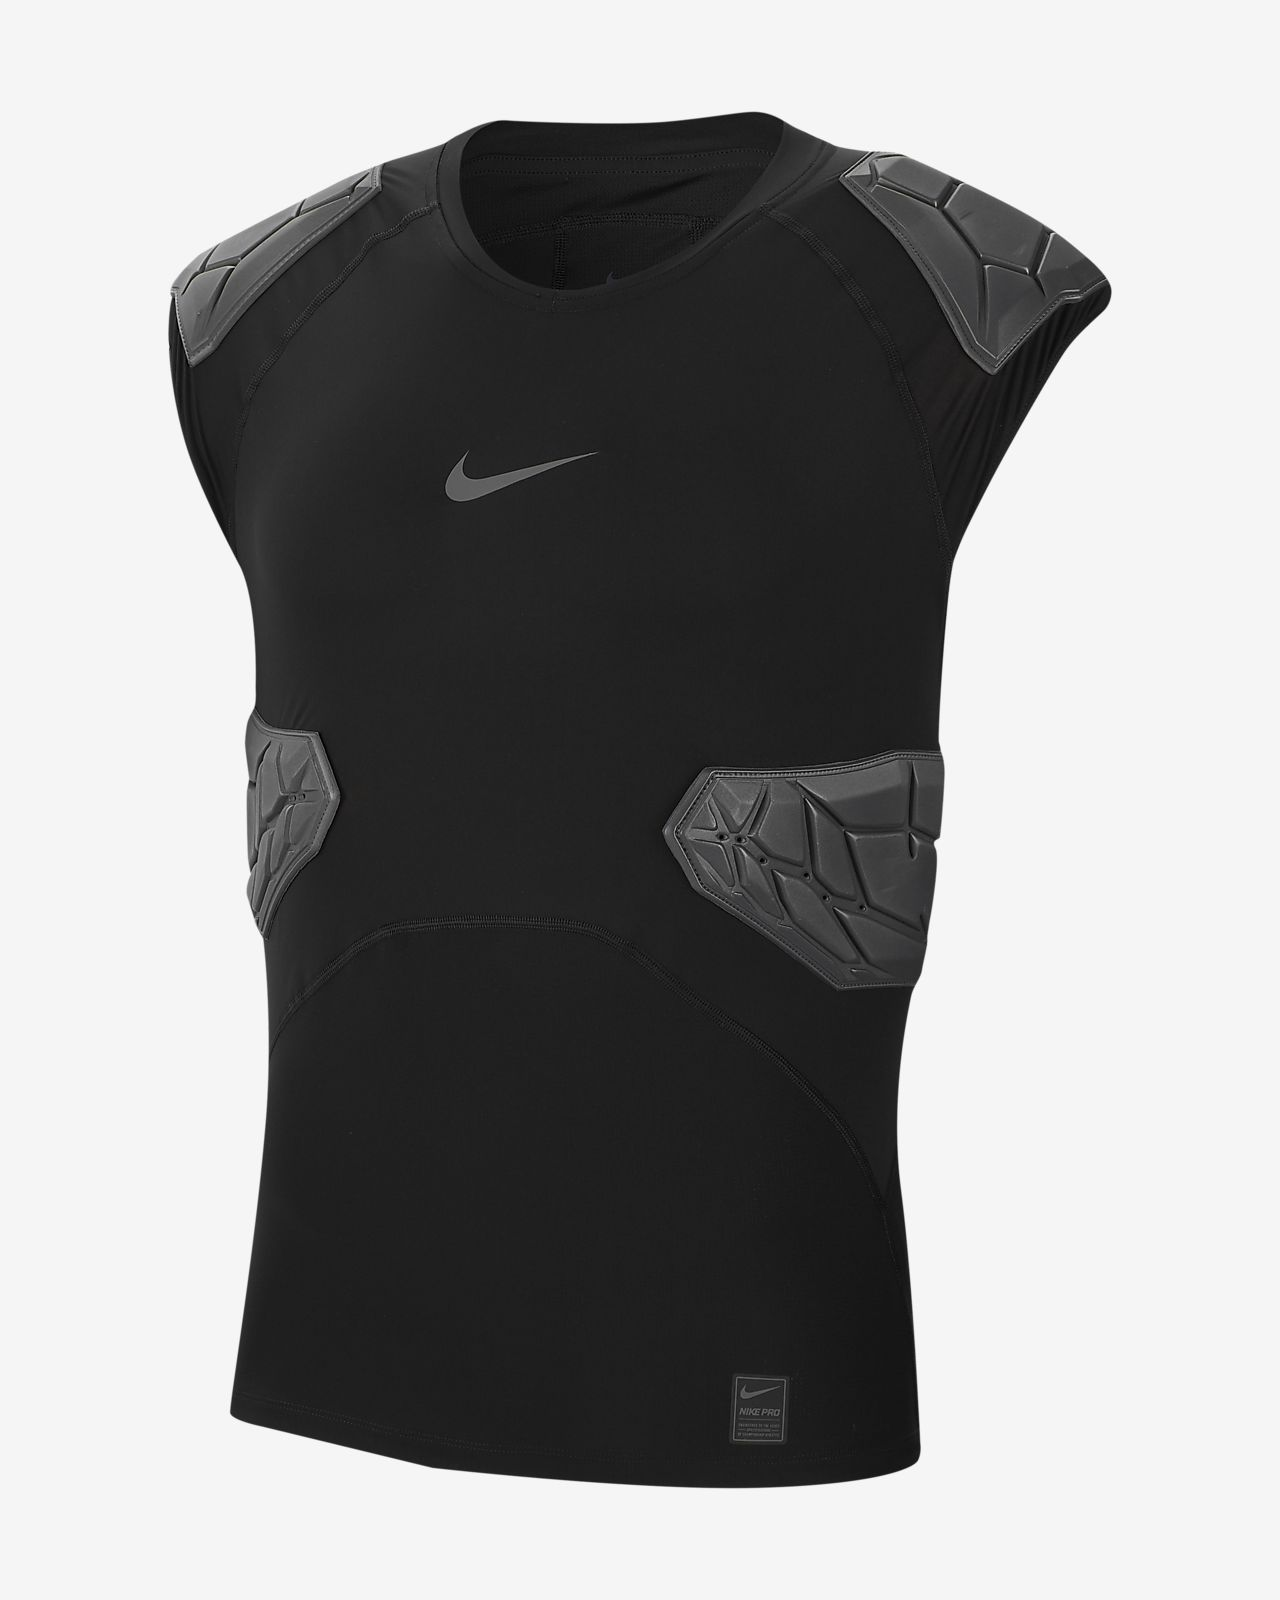 89475dd2 Nike Pro HyperStrong Men's 4-Pad Top. Nike.com